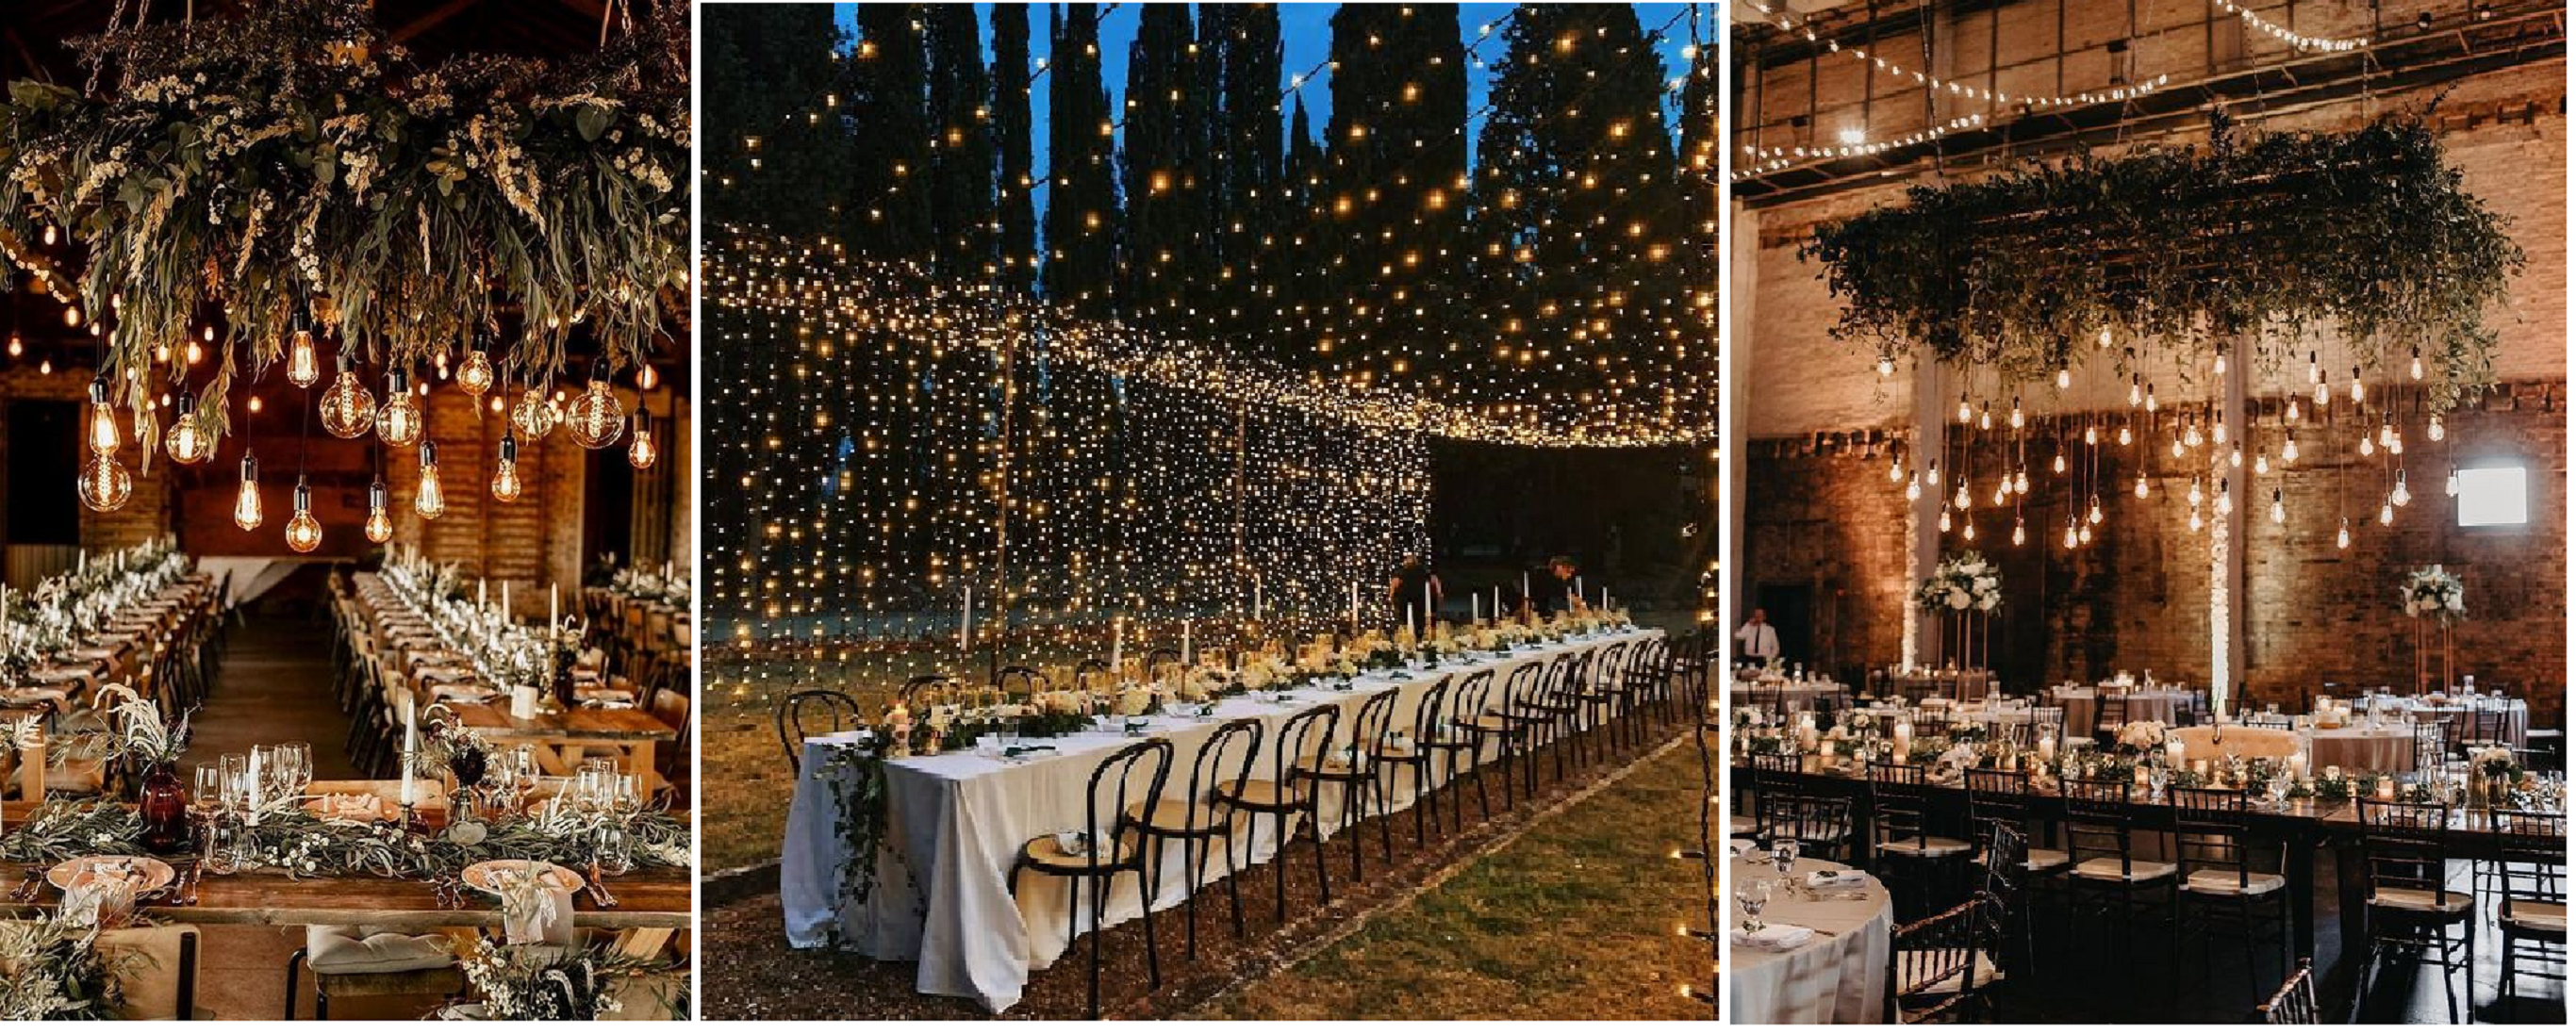 Bling wedding receptions Doesn't It Look Like A Grand Bright Outdoor Wedding?